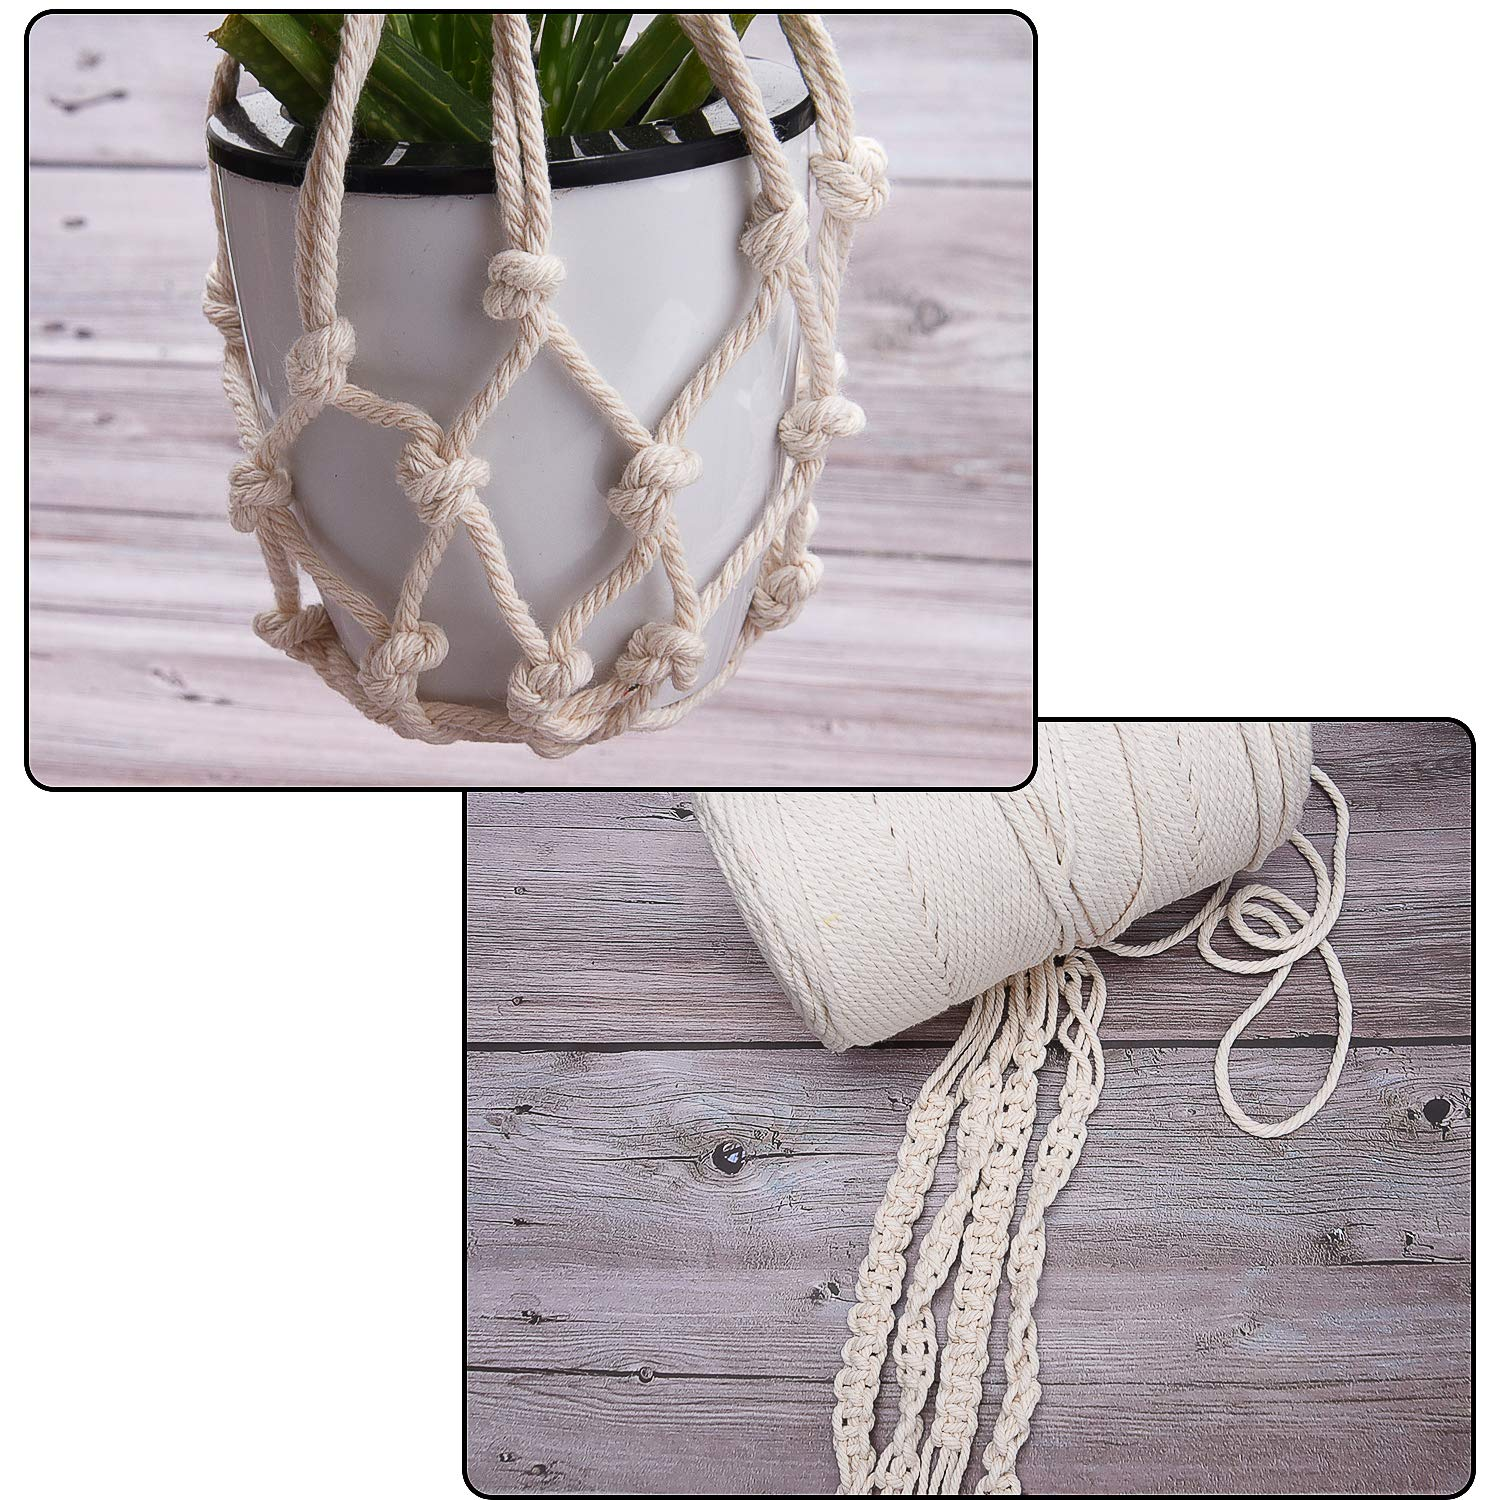 Livder Macrame Cord 4mm x 240 Yards String Cotton Rope for Wall Hangings Plant Hangers Decorative Projects and Knits Crafts